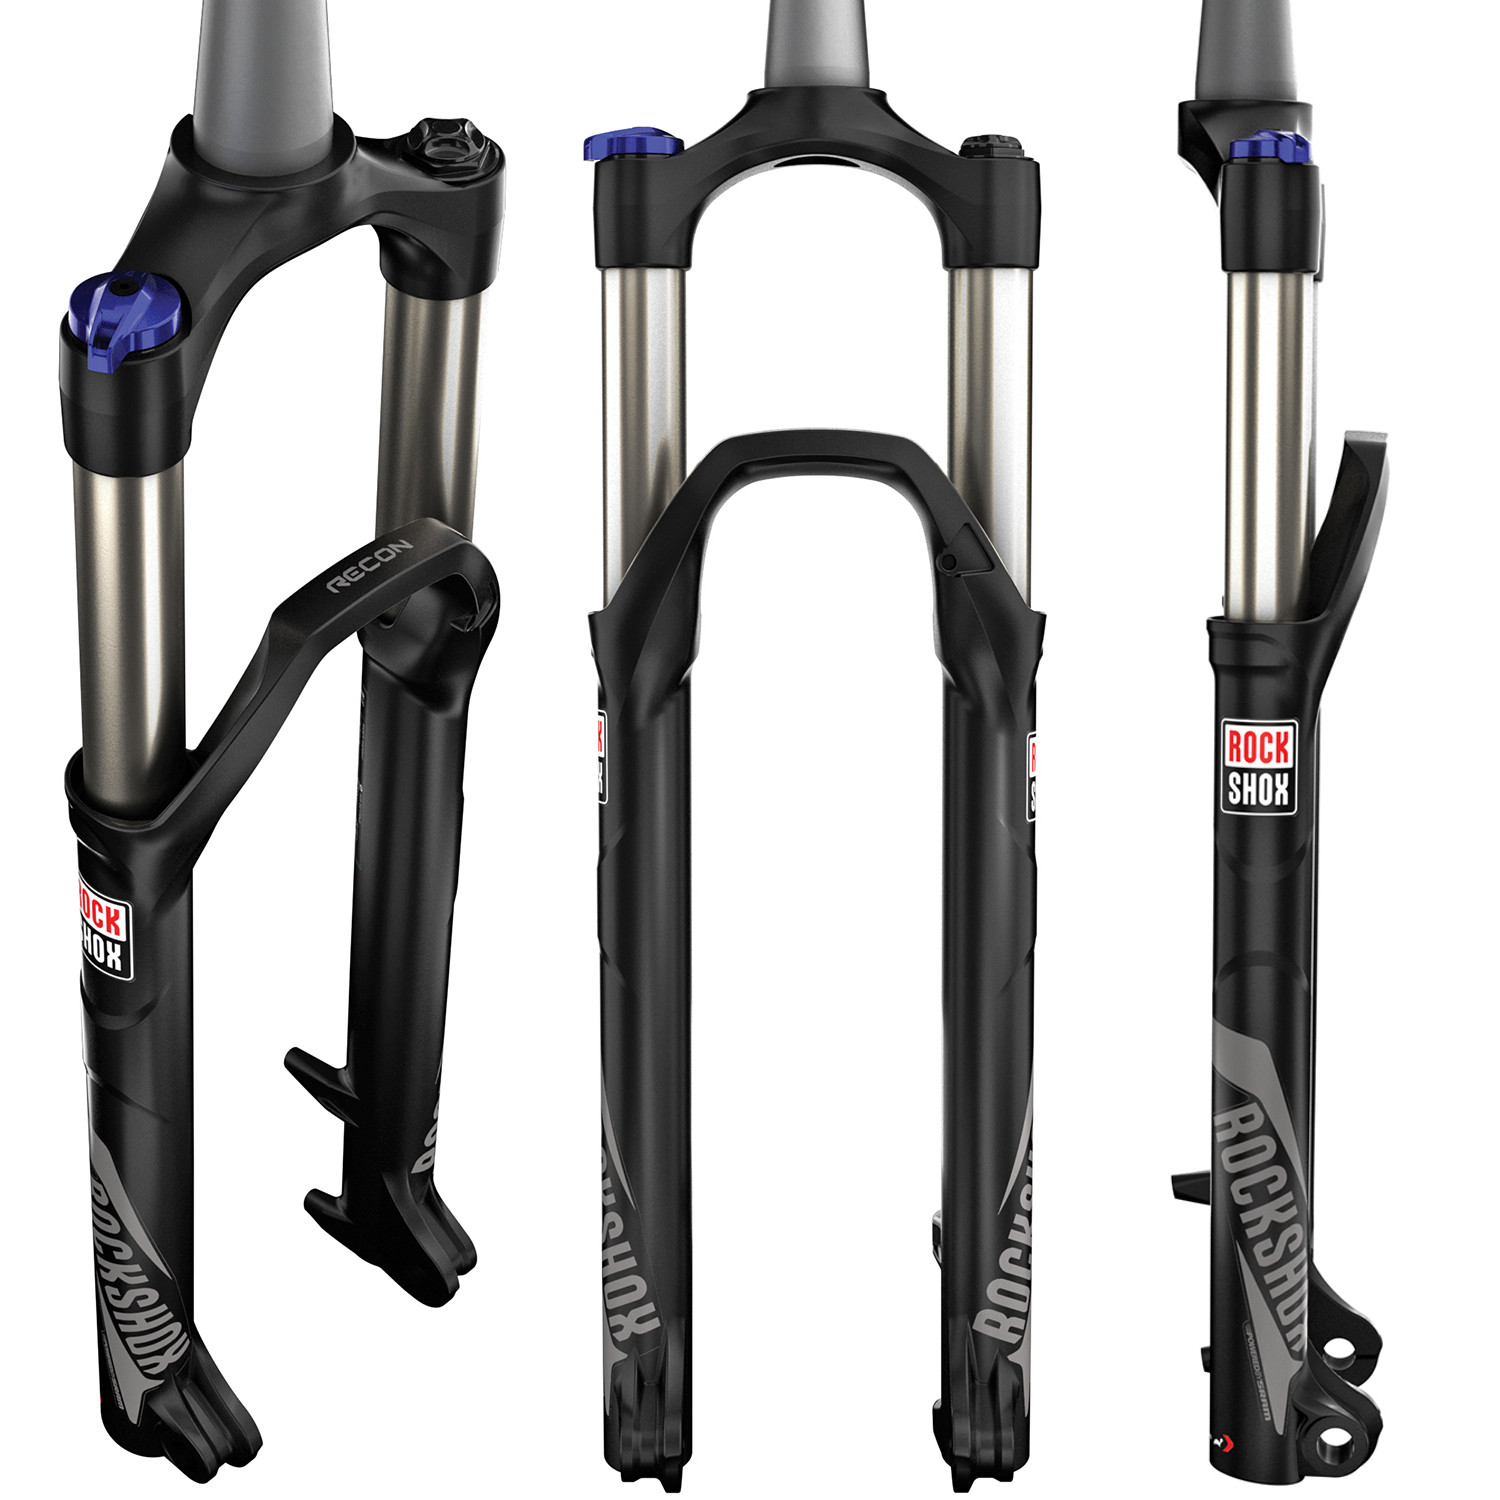 Rock Shox fork: features, specifications